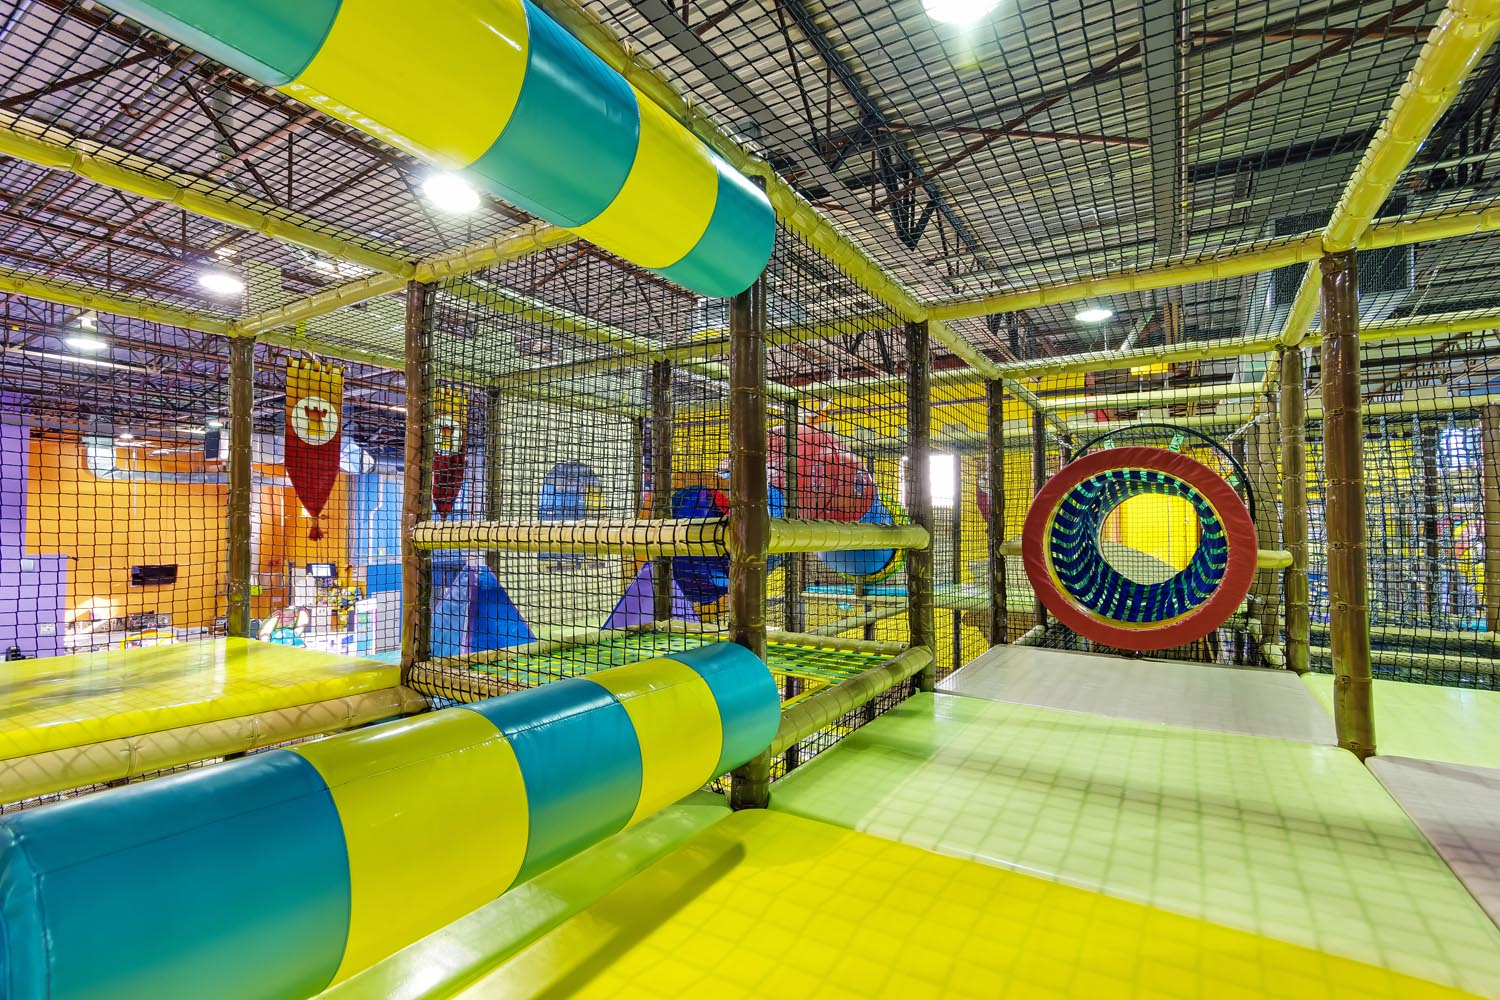 Indoor Jungle Gym & Indoor Playground - Playtopia